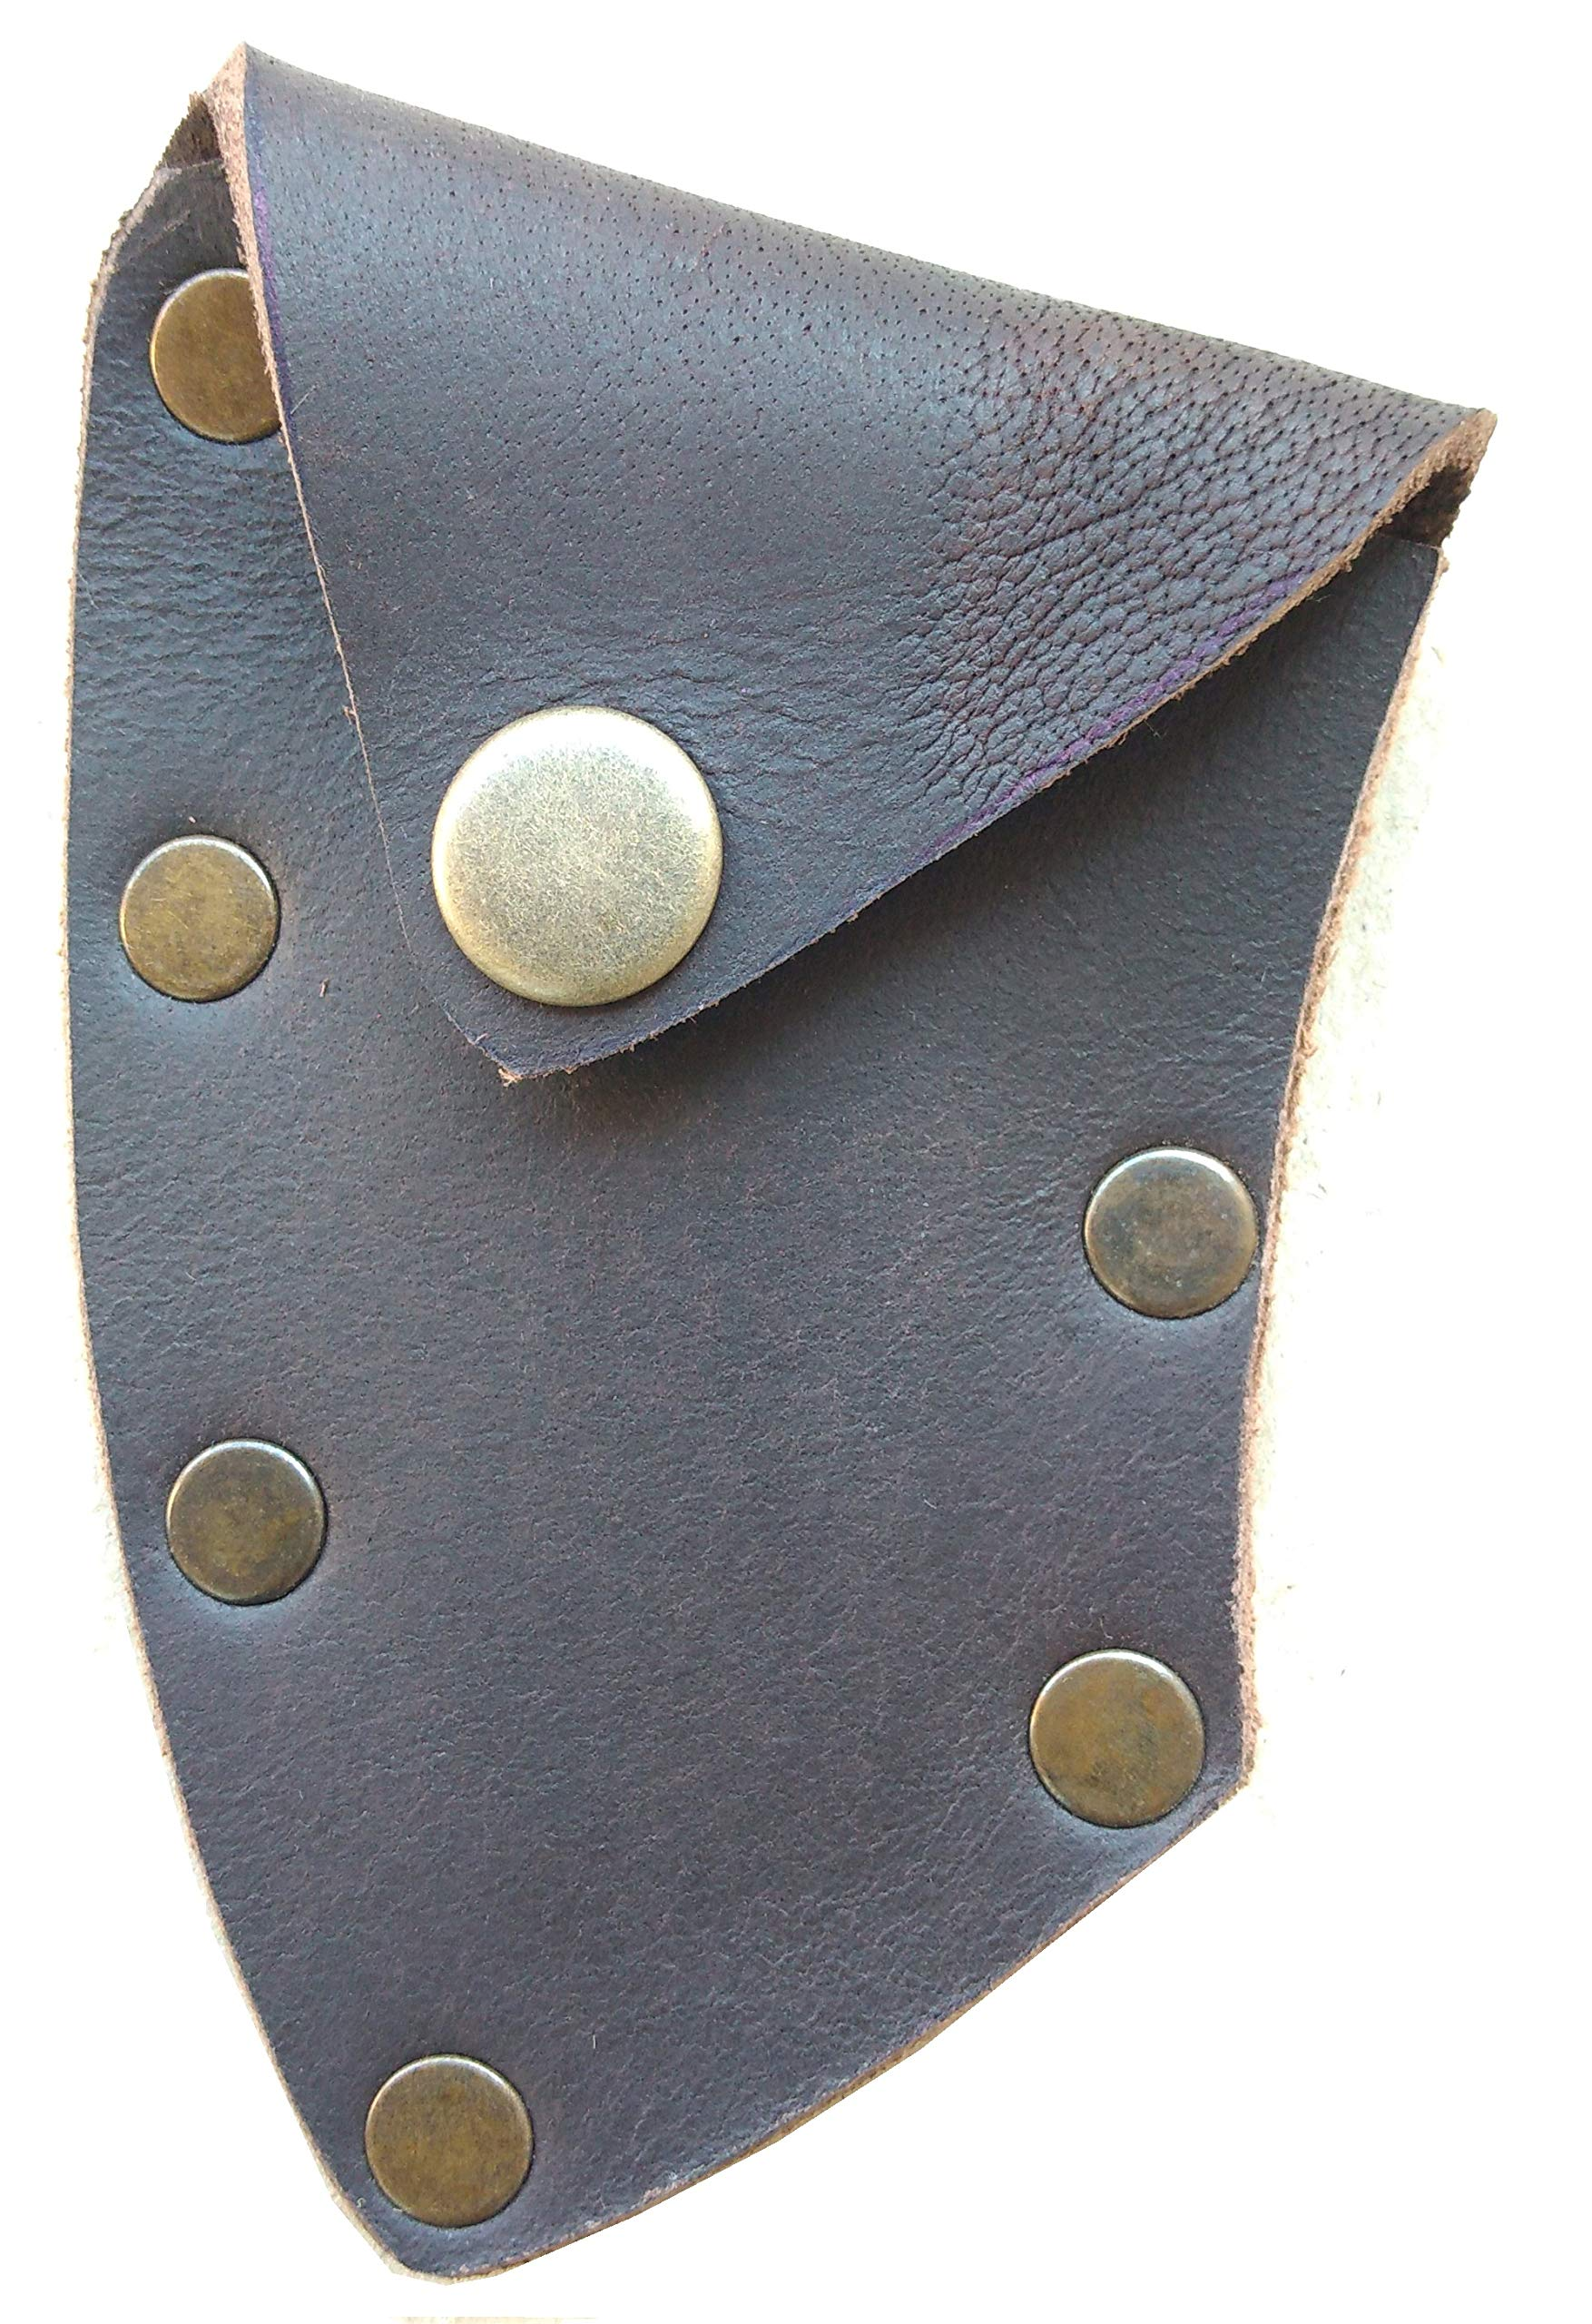 Leather sheath for the small axe